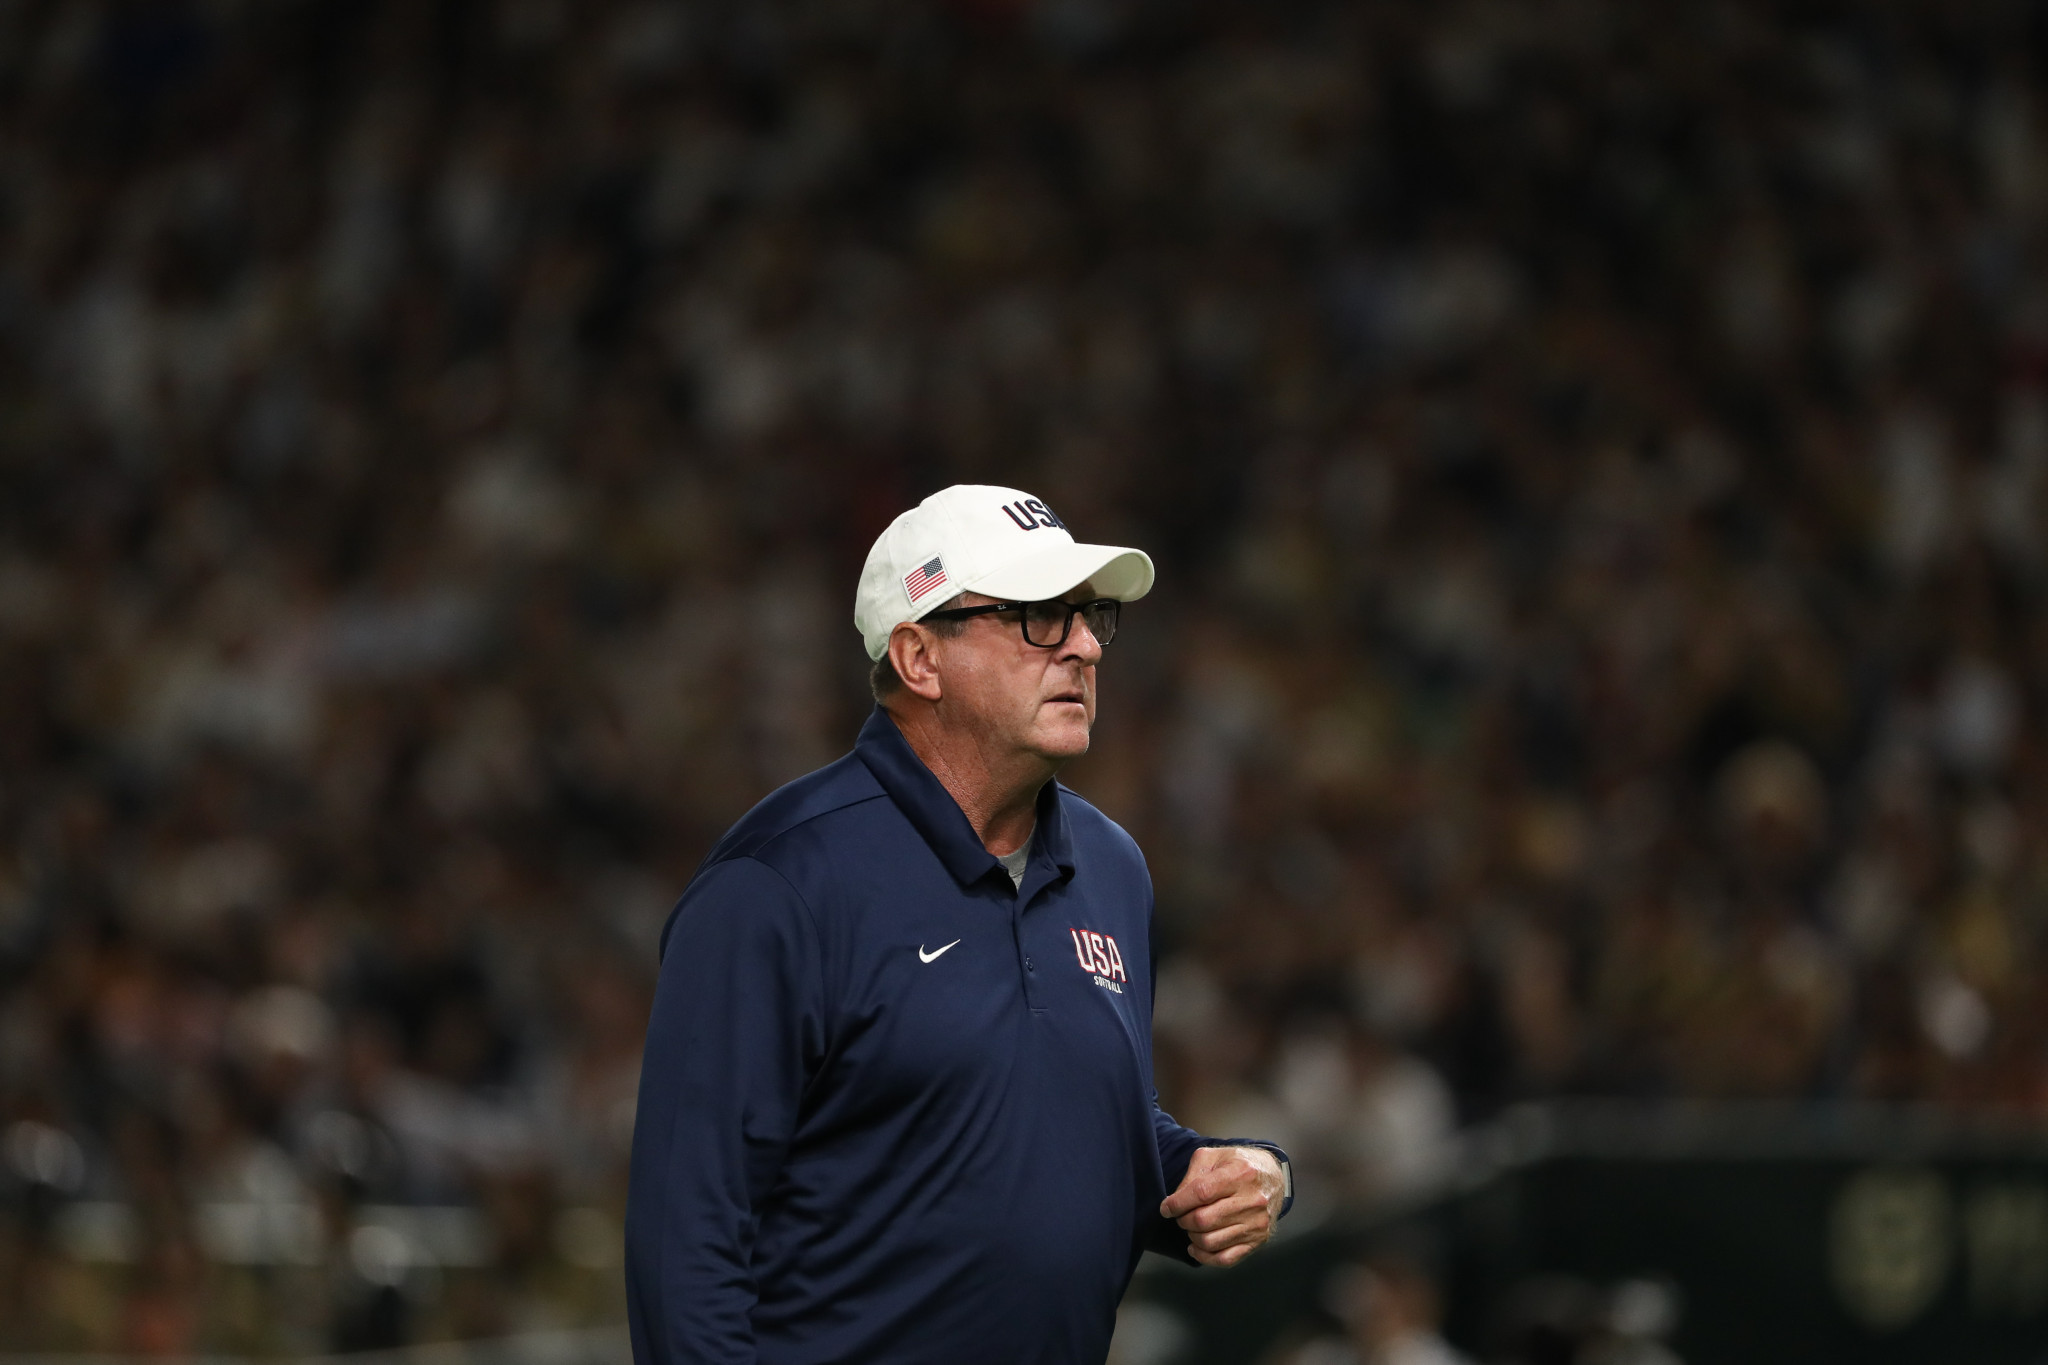 US softball coach Eriksen unsure whether Tokyo 2020 should have taken place